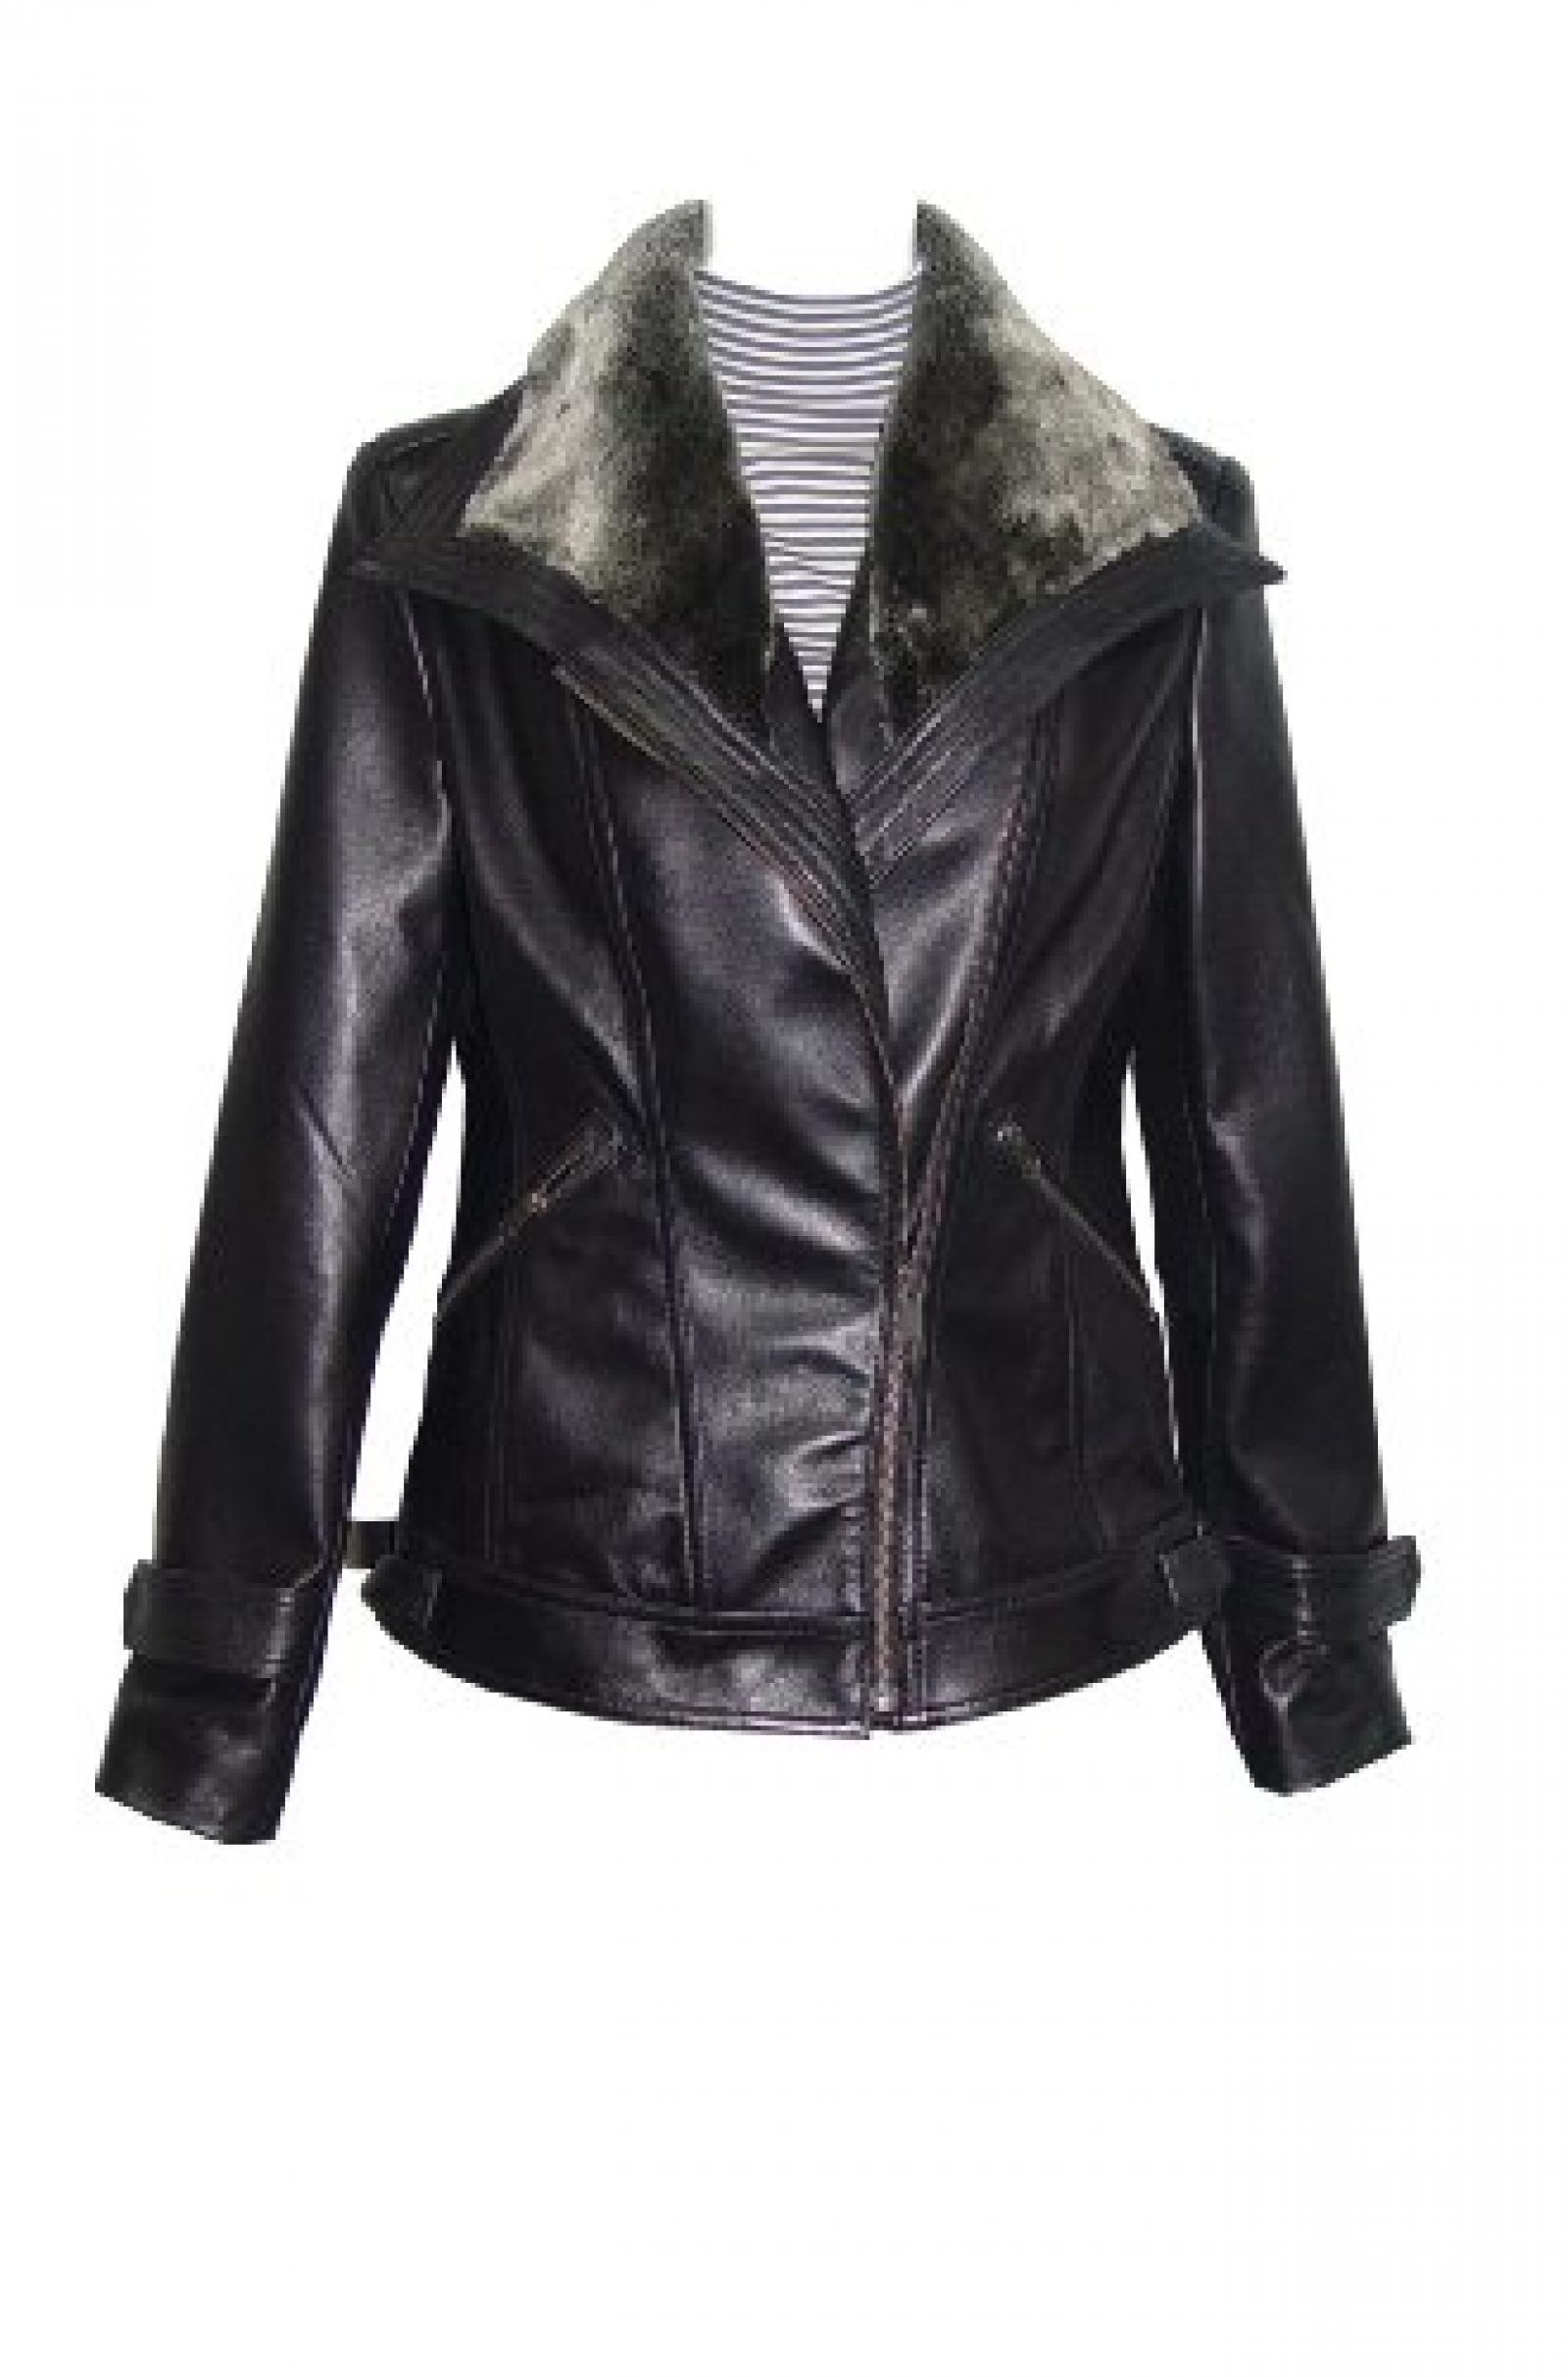 Nettailor Women PLUS SIZE 4061 Lamb Leather Motorcycle Jacket Fake Fur Collar